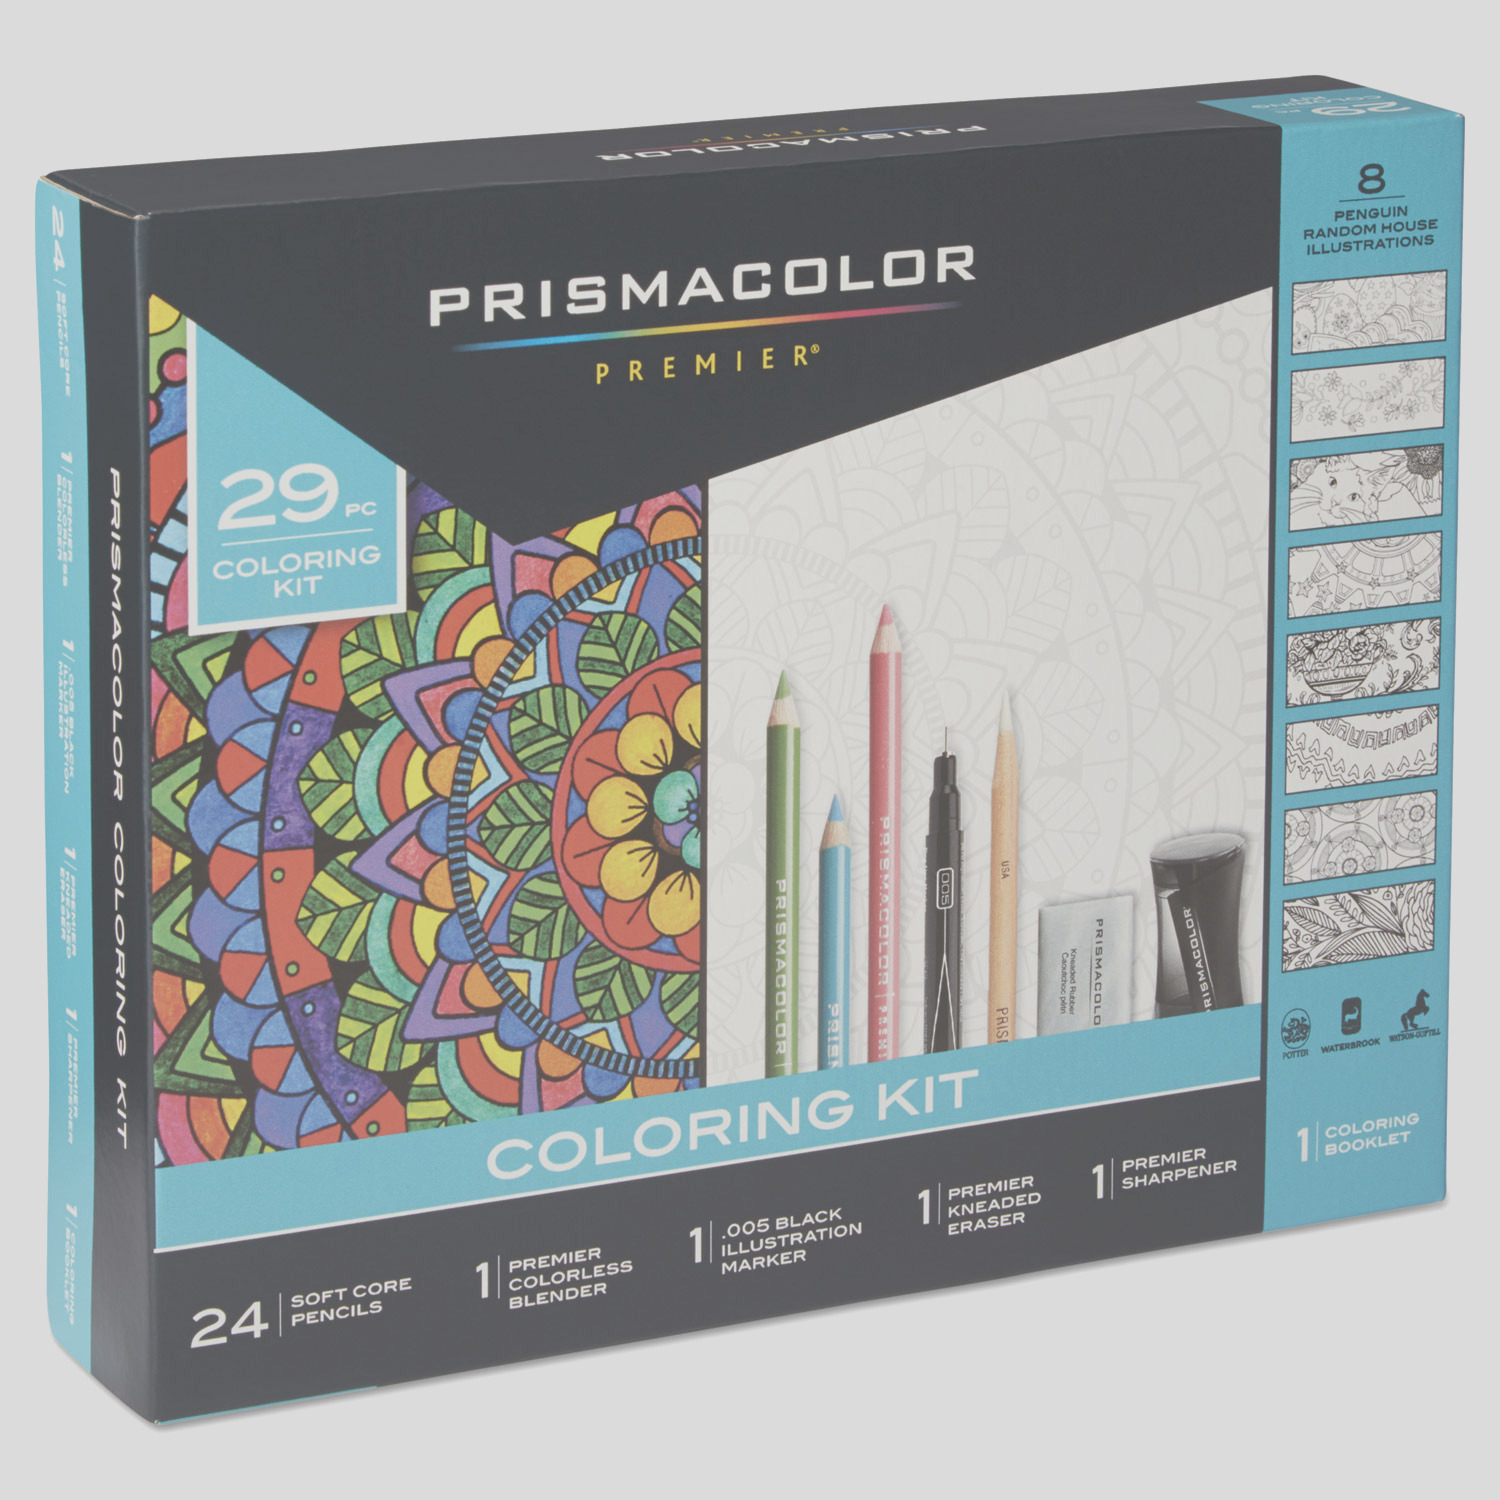 san plete toolkit with colored pencils and 8 page coloring book